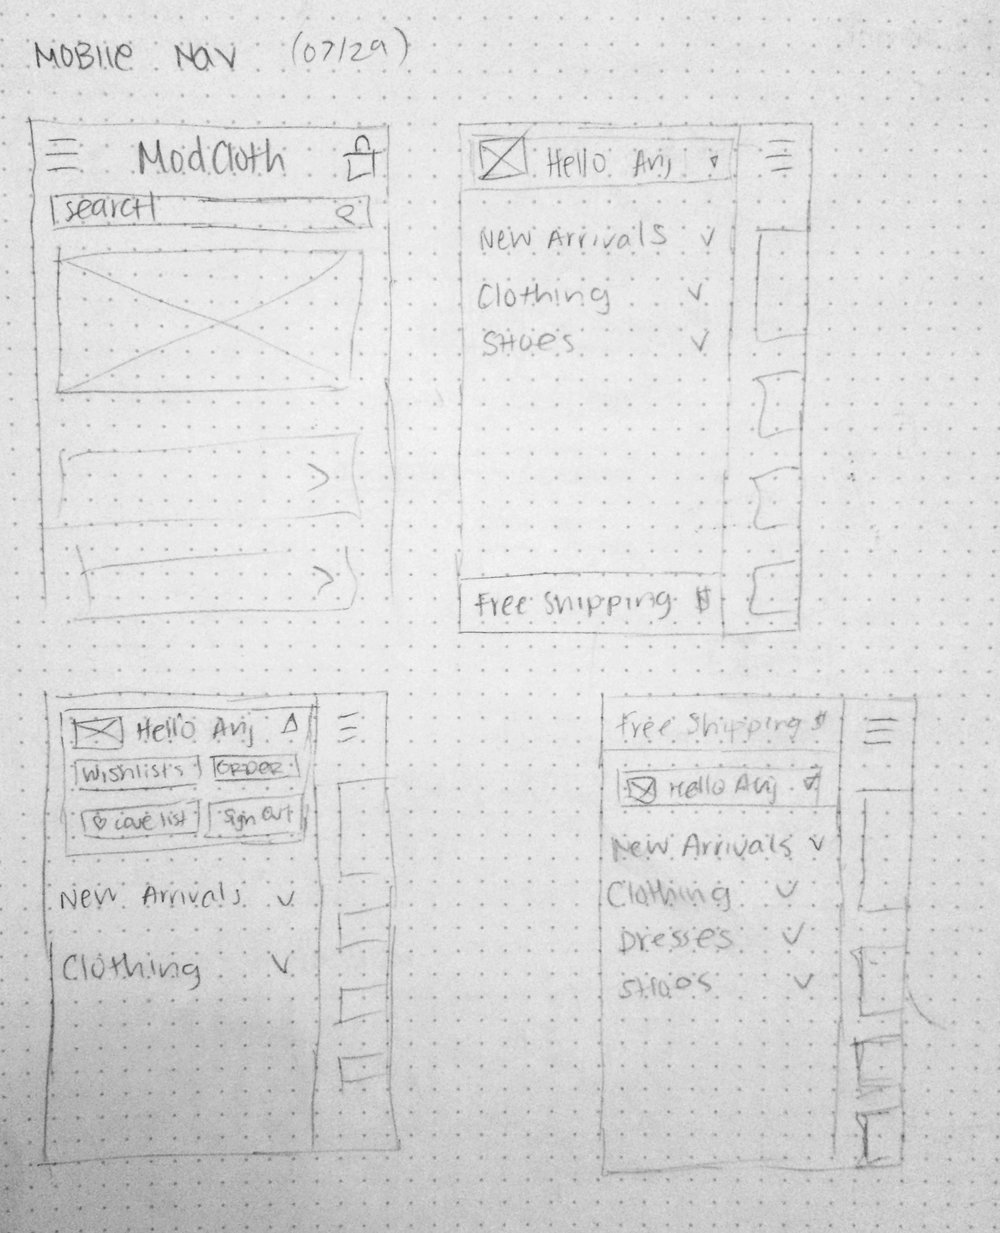 Initial sketches for a new navigation pattern